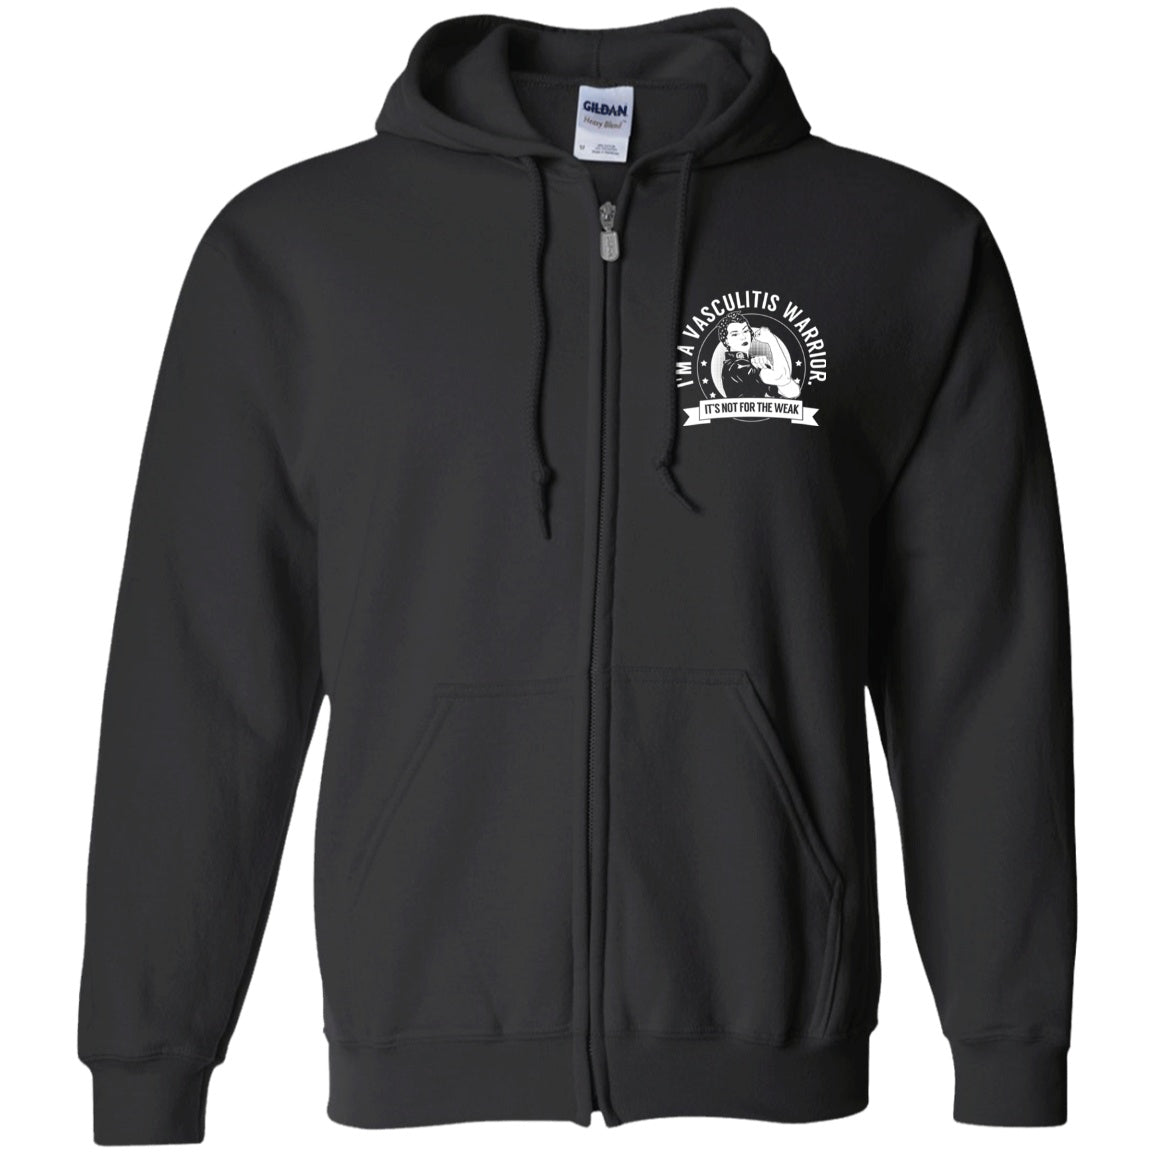 Sweatshirts - Vasculitis Warrior NFTW Zip Up Hooded Sweatshirt